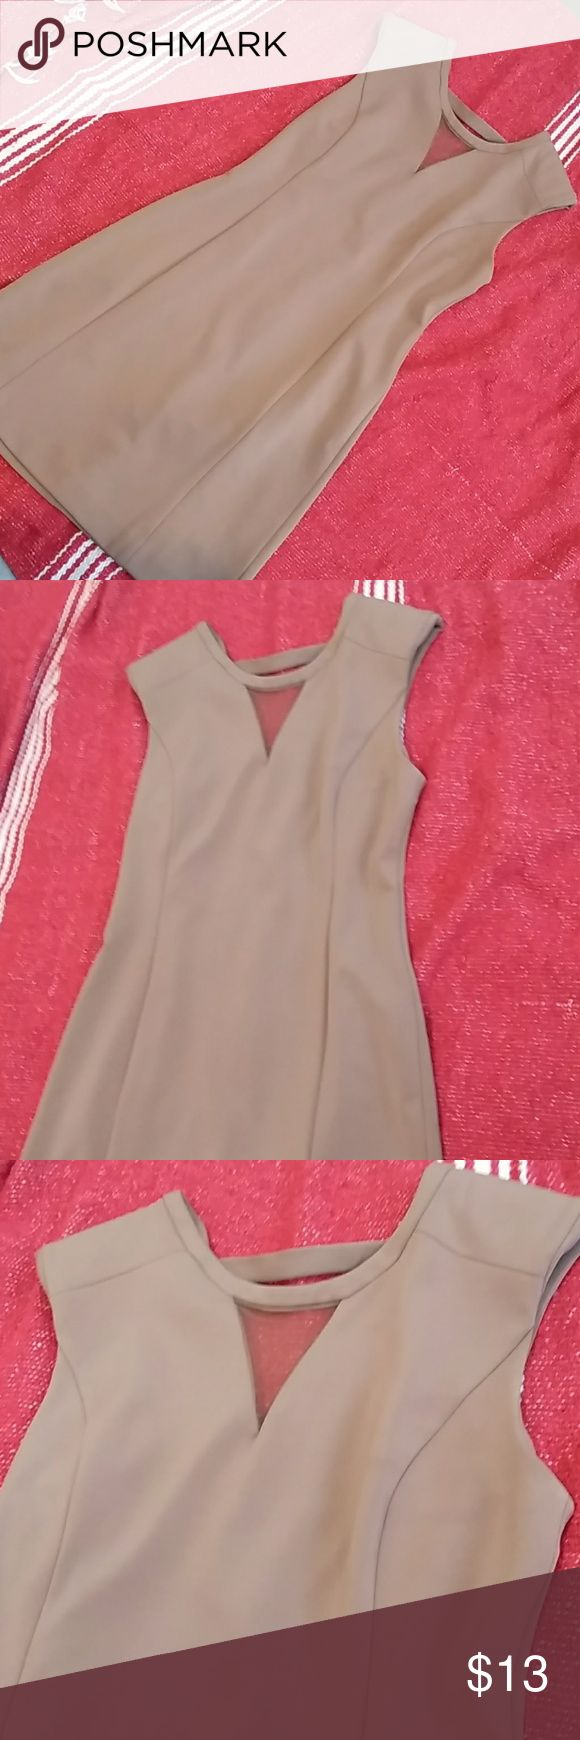 Beige mini dress (super classy!) Beige mini dress with sheer cutout under neckline with cap sleeves (slight padding) . Snap button strap on back with zipper. Forever 21 Dresses Mini